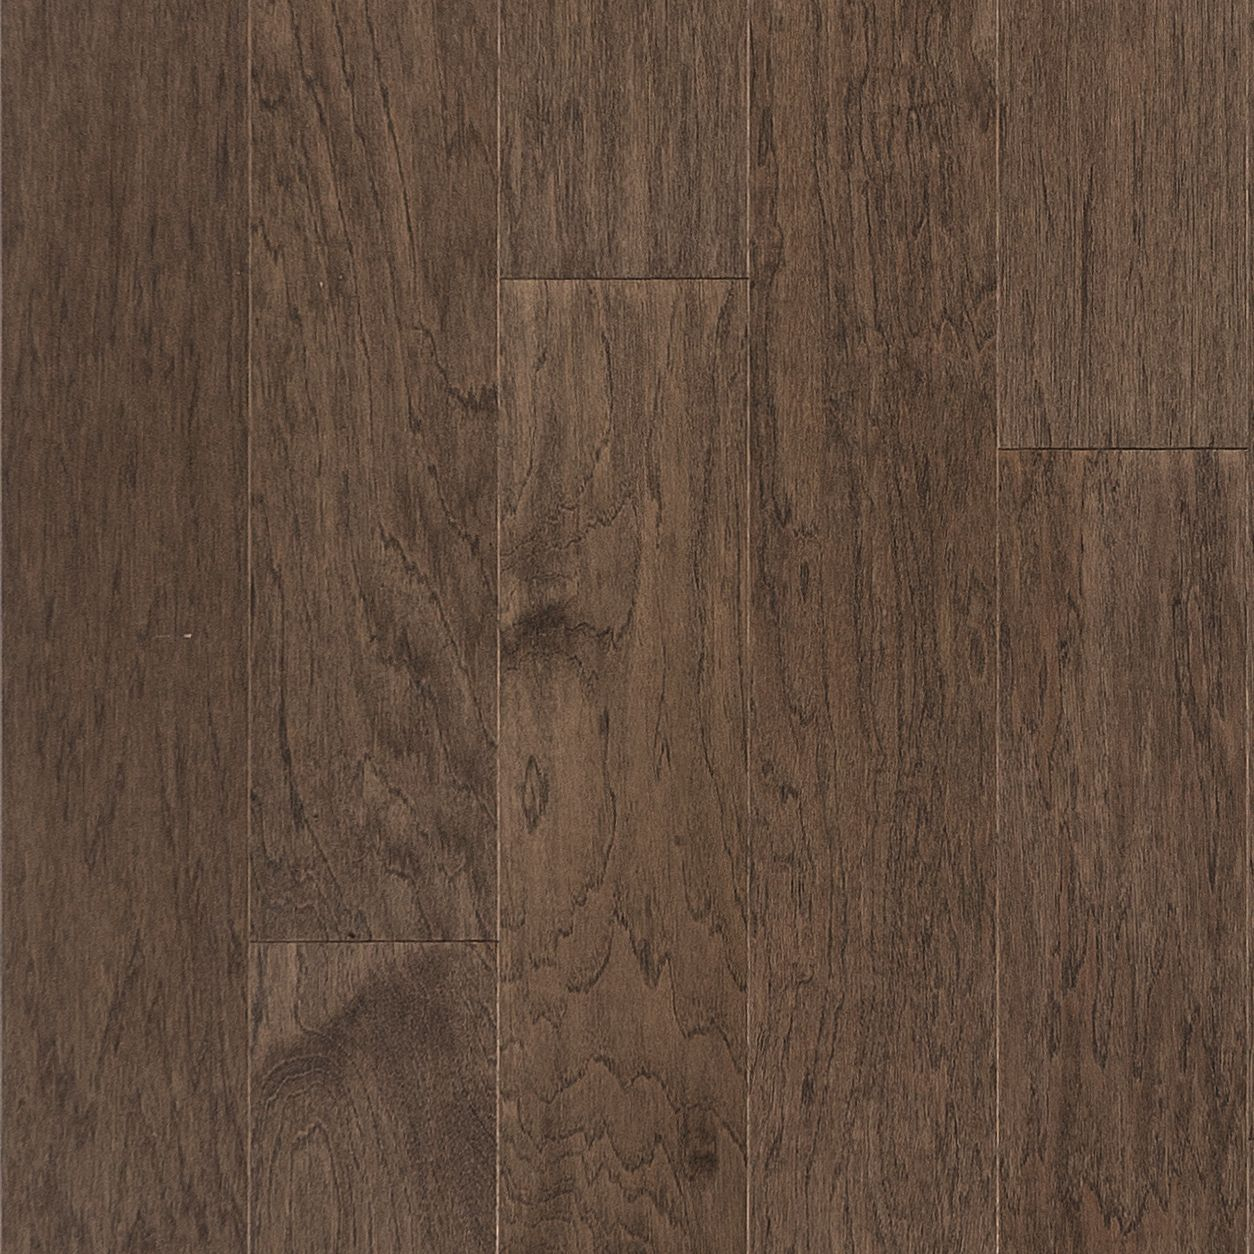 Vintage Hickory Worn Taupe From Our One, Vintage Worn Hickory Laminate Flooring